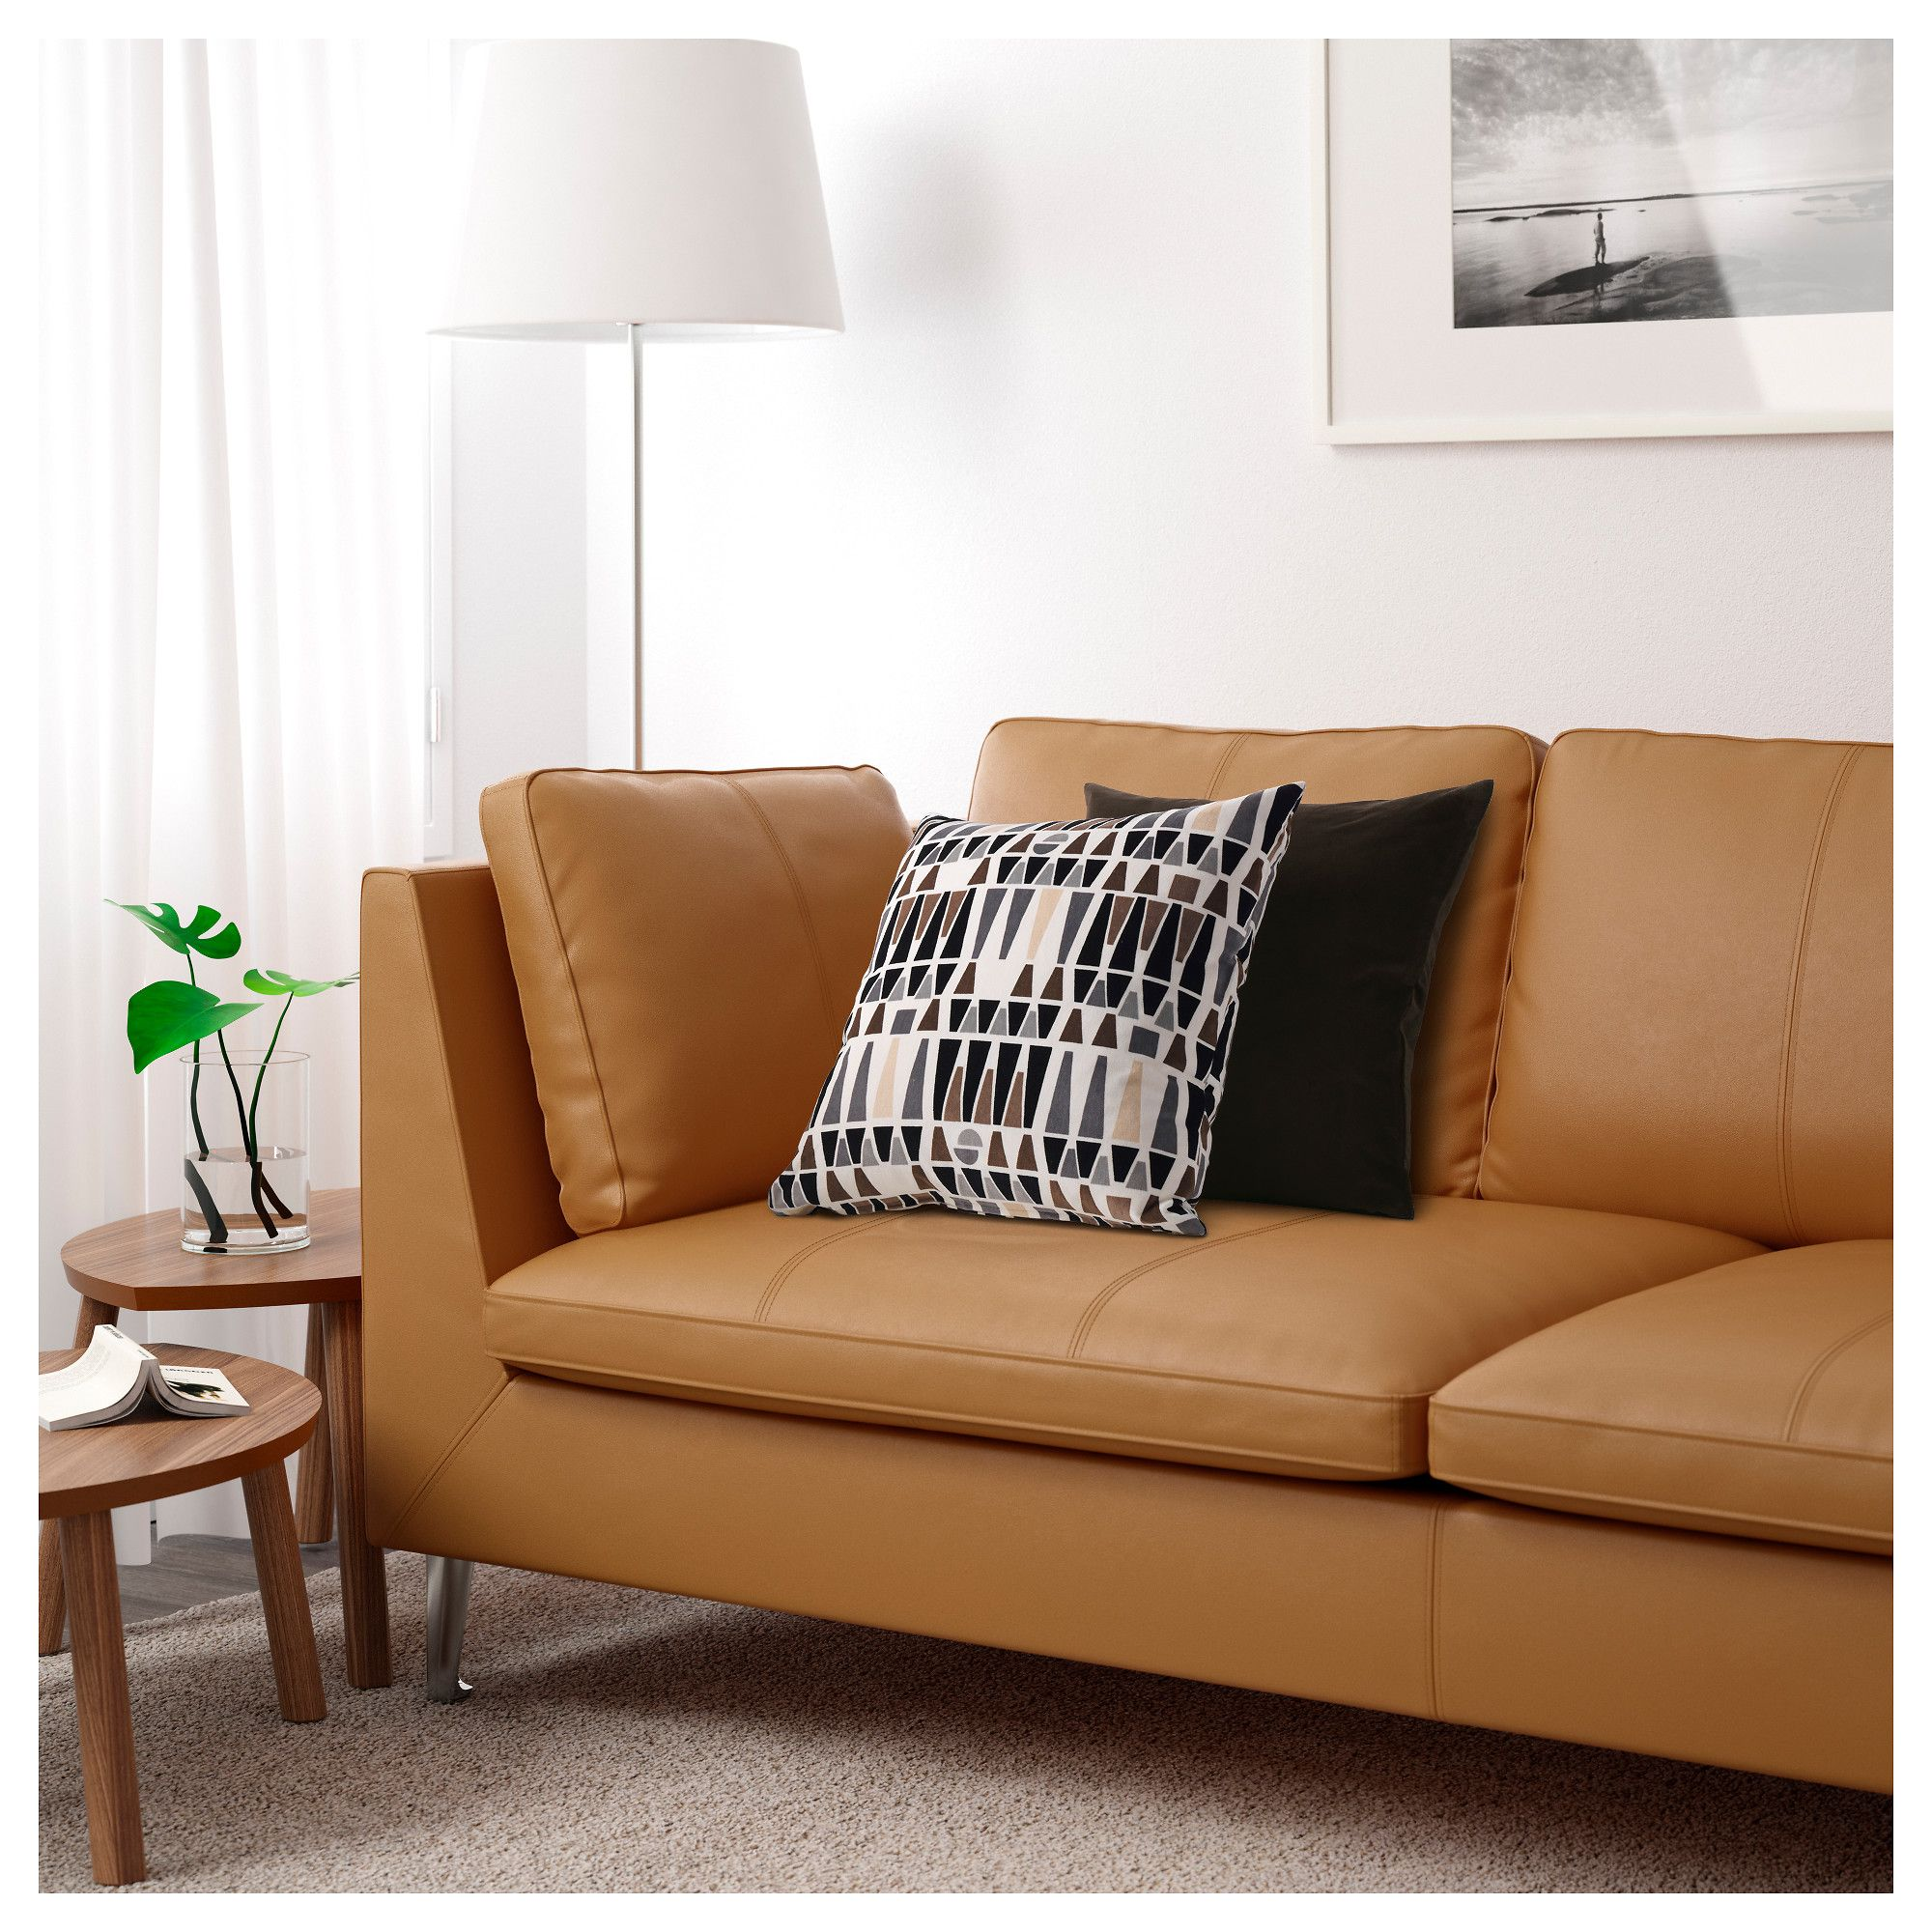 IKEA   STOCKHOLM, Sofa, Seglora Natural, , Highly Durable Full Grain  Leather Which Is Soft And Has A Natural Look And Feel.Full Grain Leather  Breathes Well ...